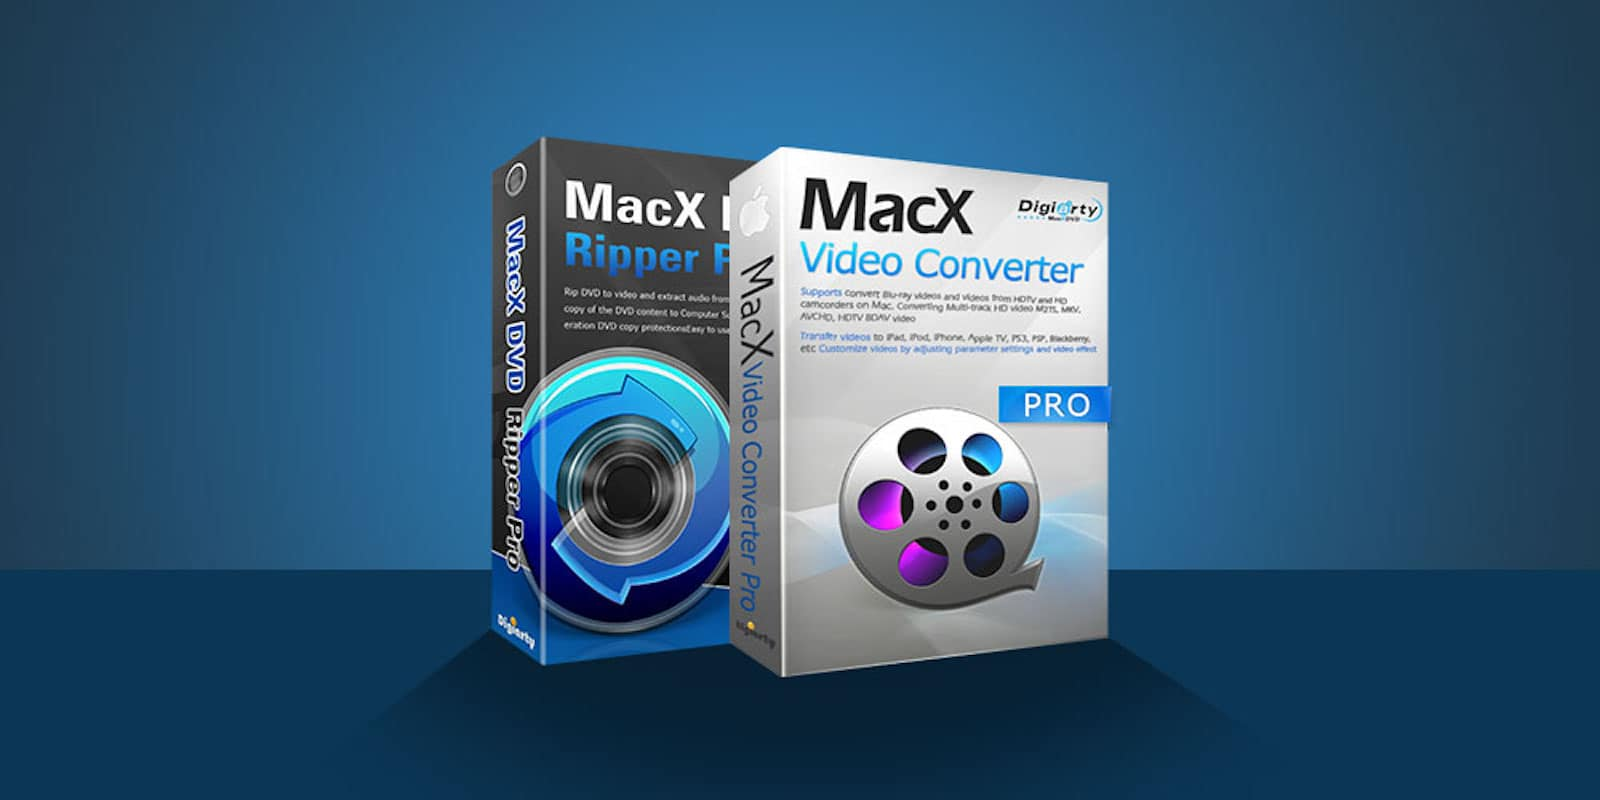 The MacX Media Conversion Lifetime License Bundle